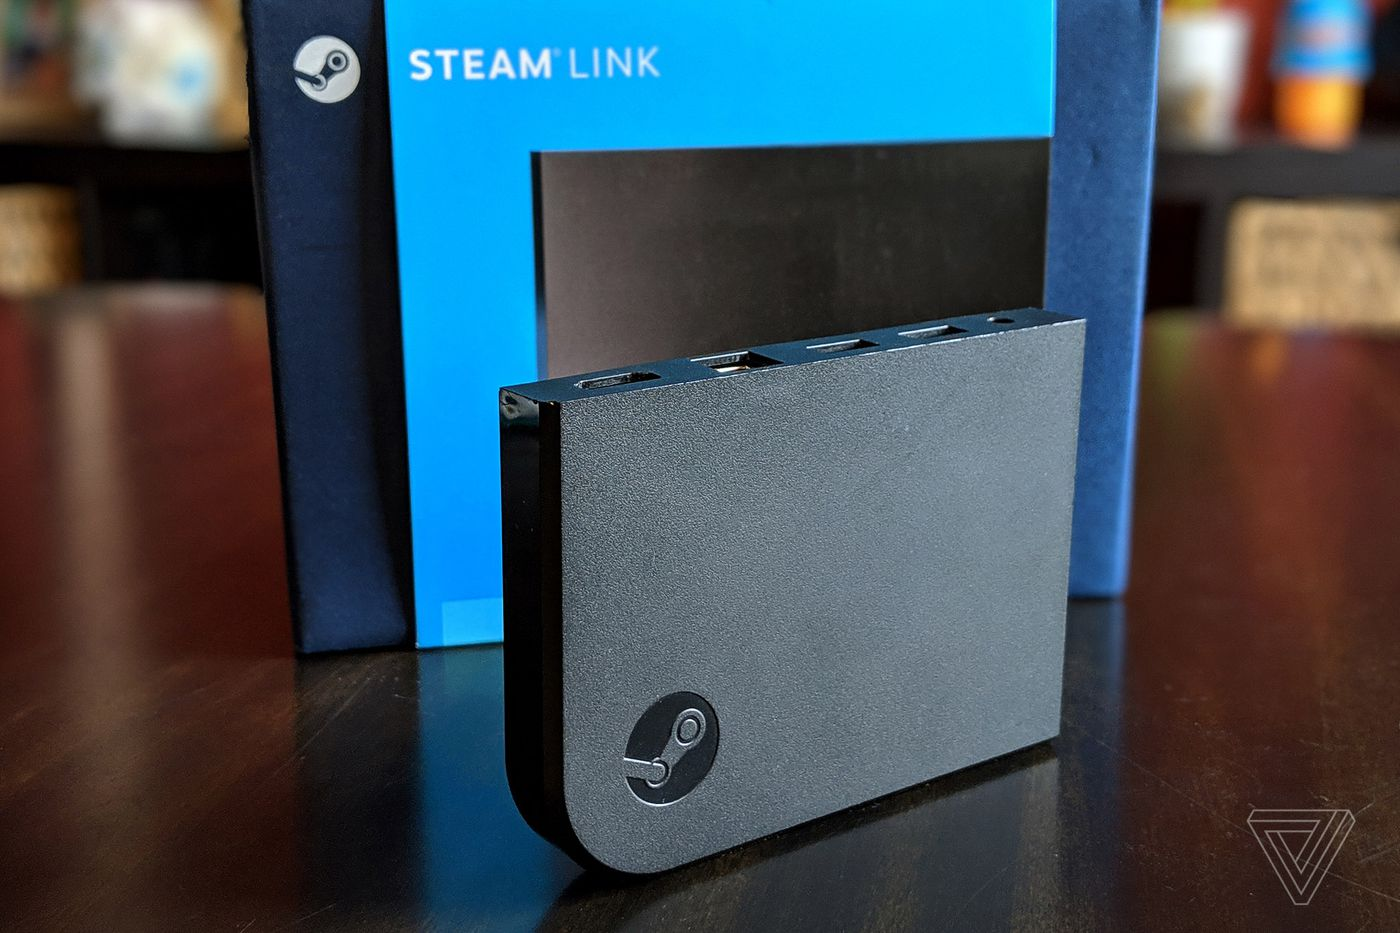 Valve Discontinues The Steam Link The Best Wireless Hdmi Gadget Ever Made The Verge